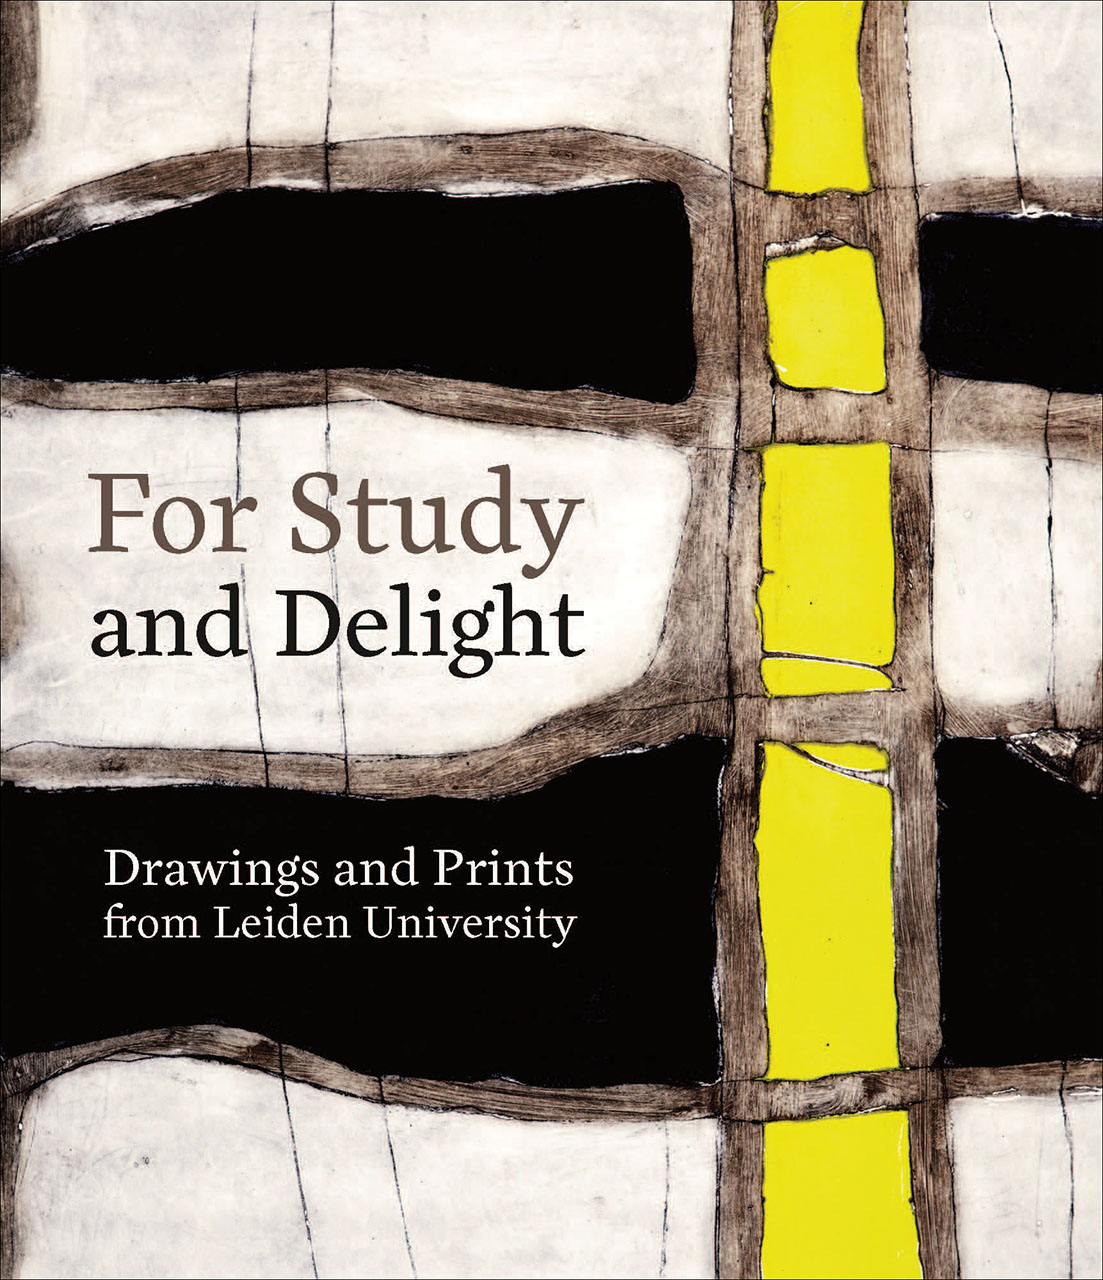 For Study and Delight: Drawings and Prints from Leiden University